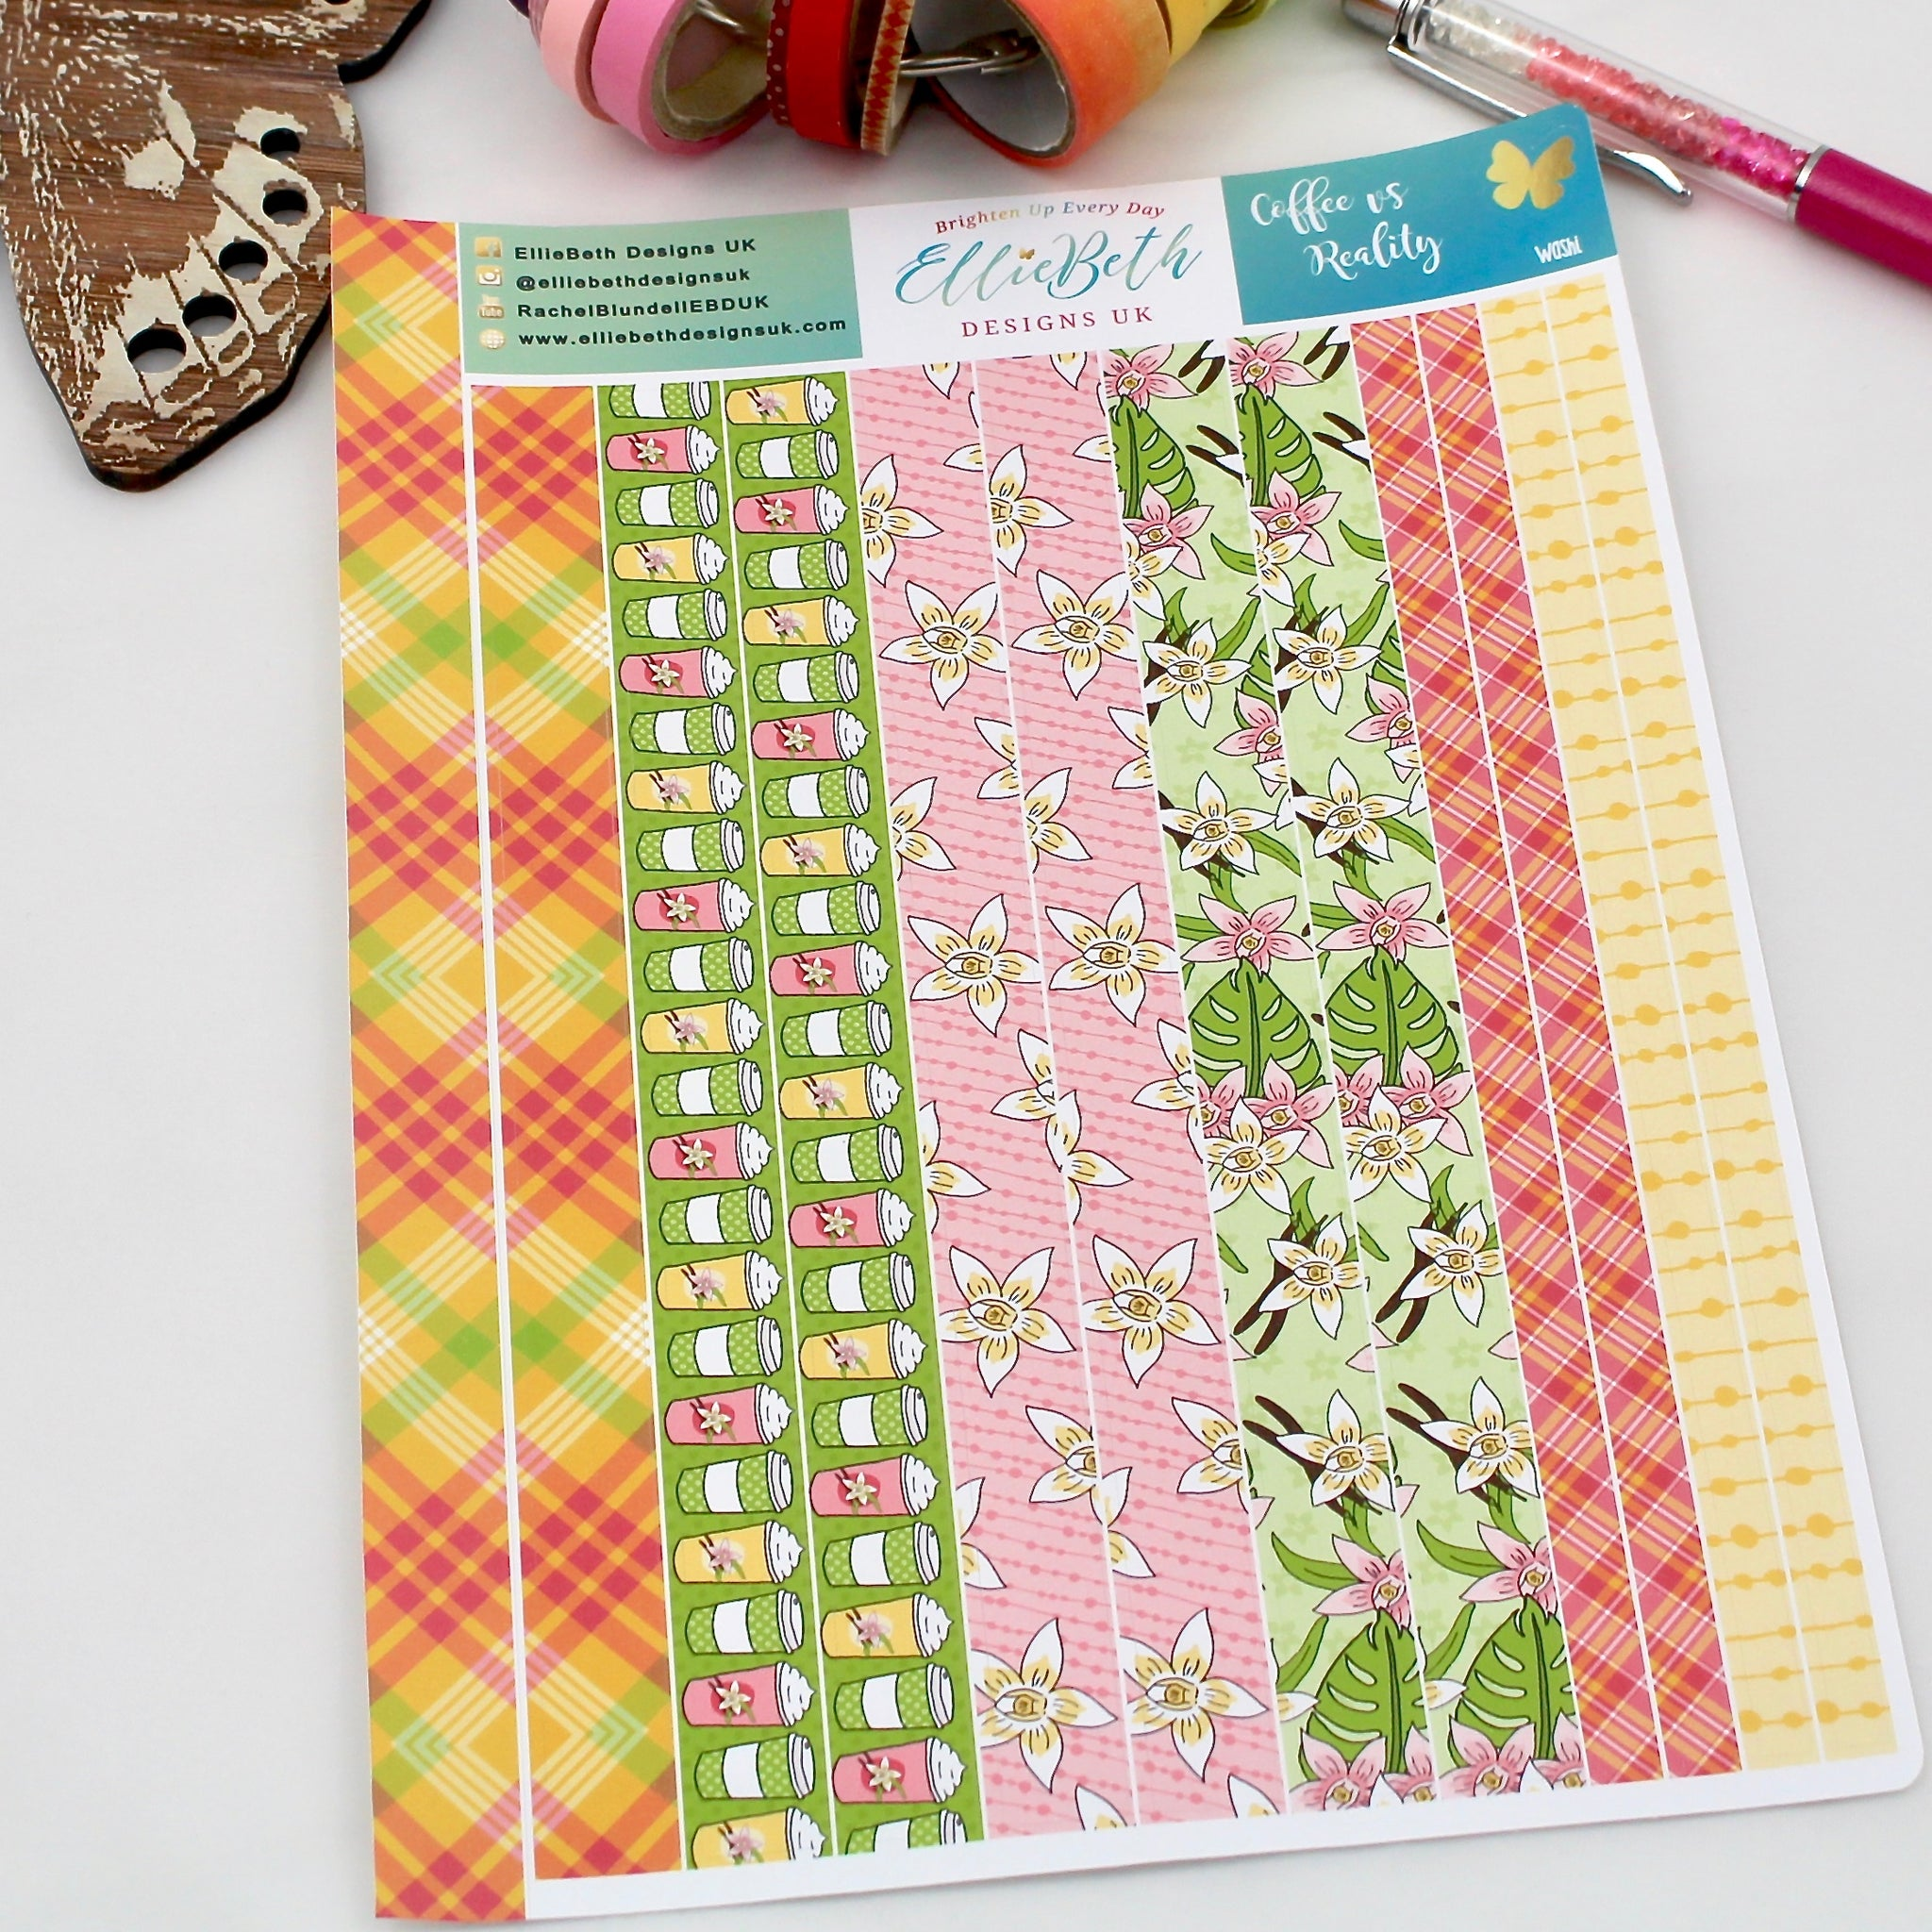 'Coffee vs Reality' - Washi Strips -  A5 binder ready planner stickers